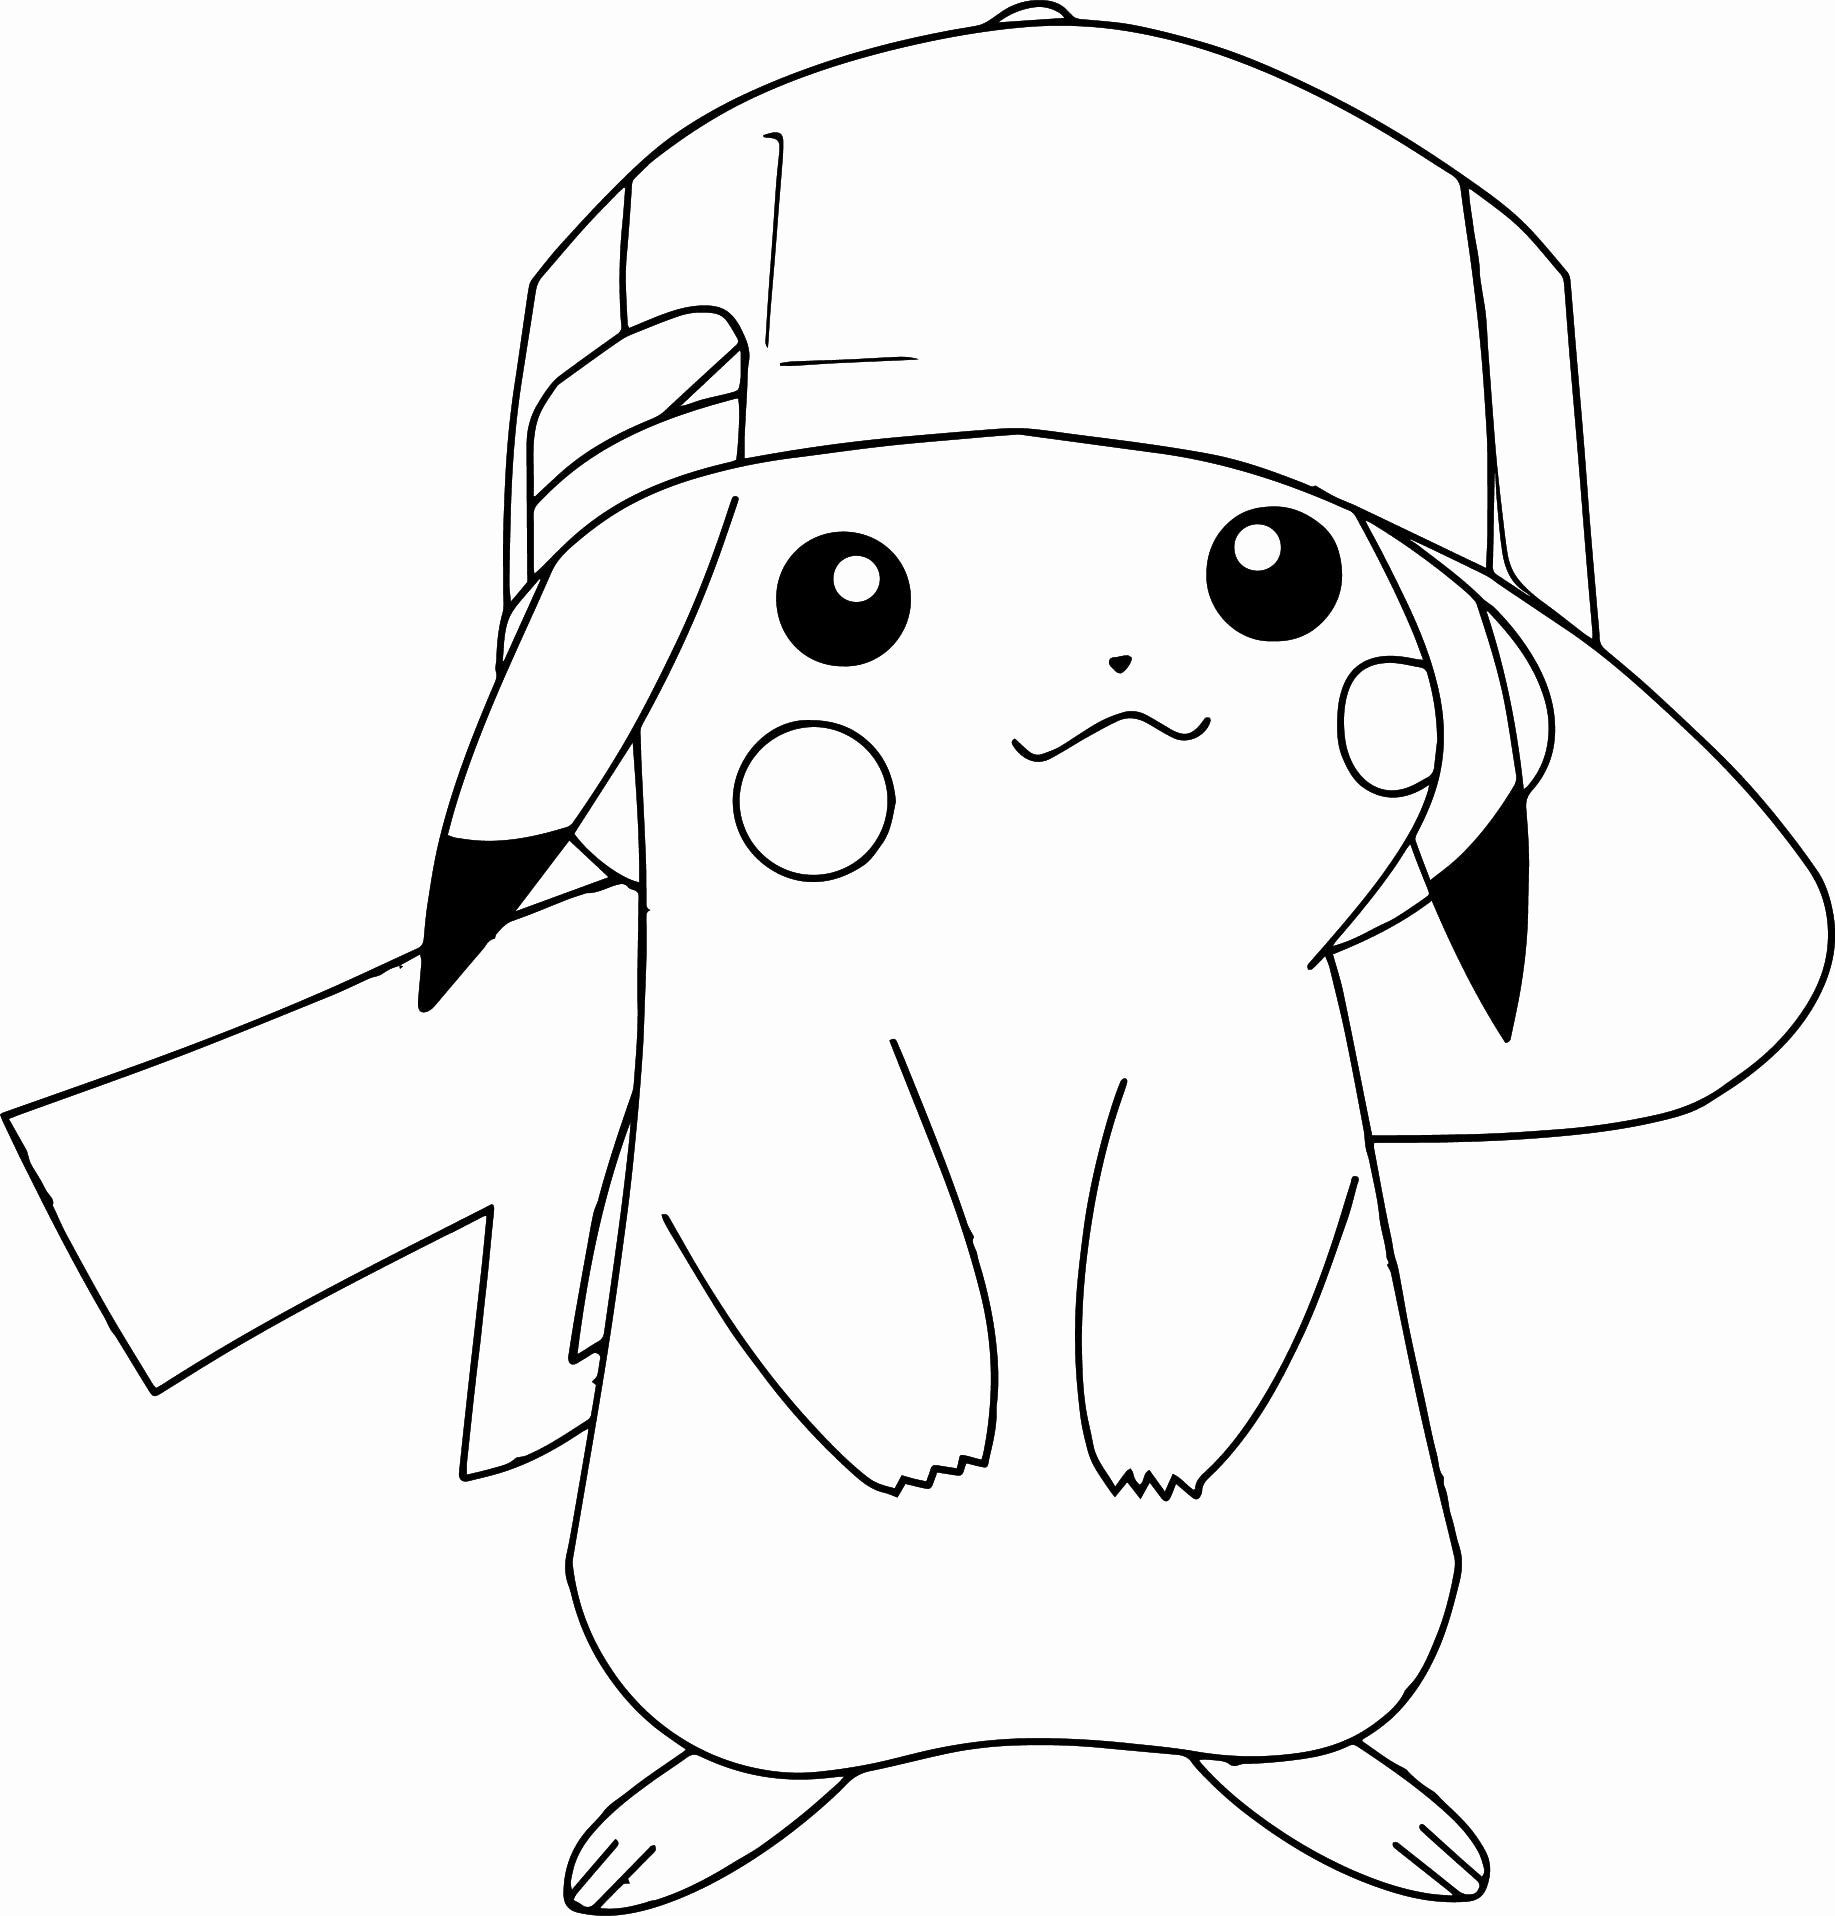 Pokemon Drawing Book Download Elegant Pokemon Coloring Pages In 2020 Pikachu Coloring Page Cartoon Coloring Pages Pokemon Coloring Pages